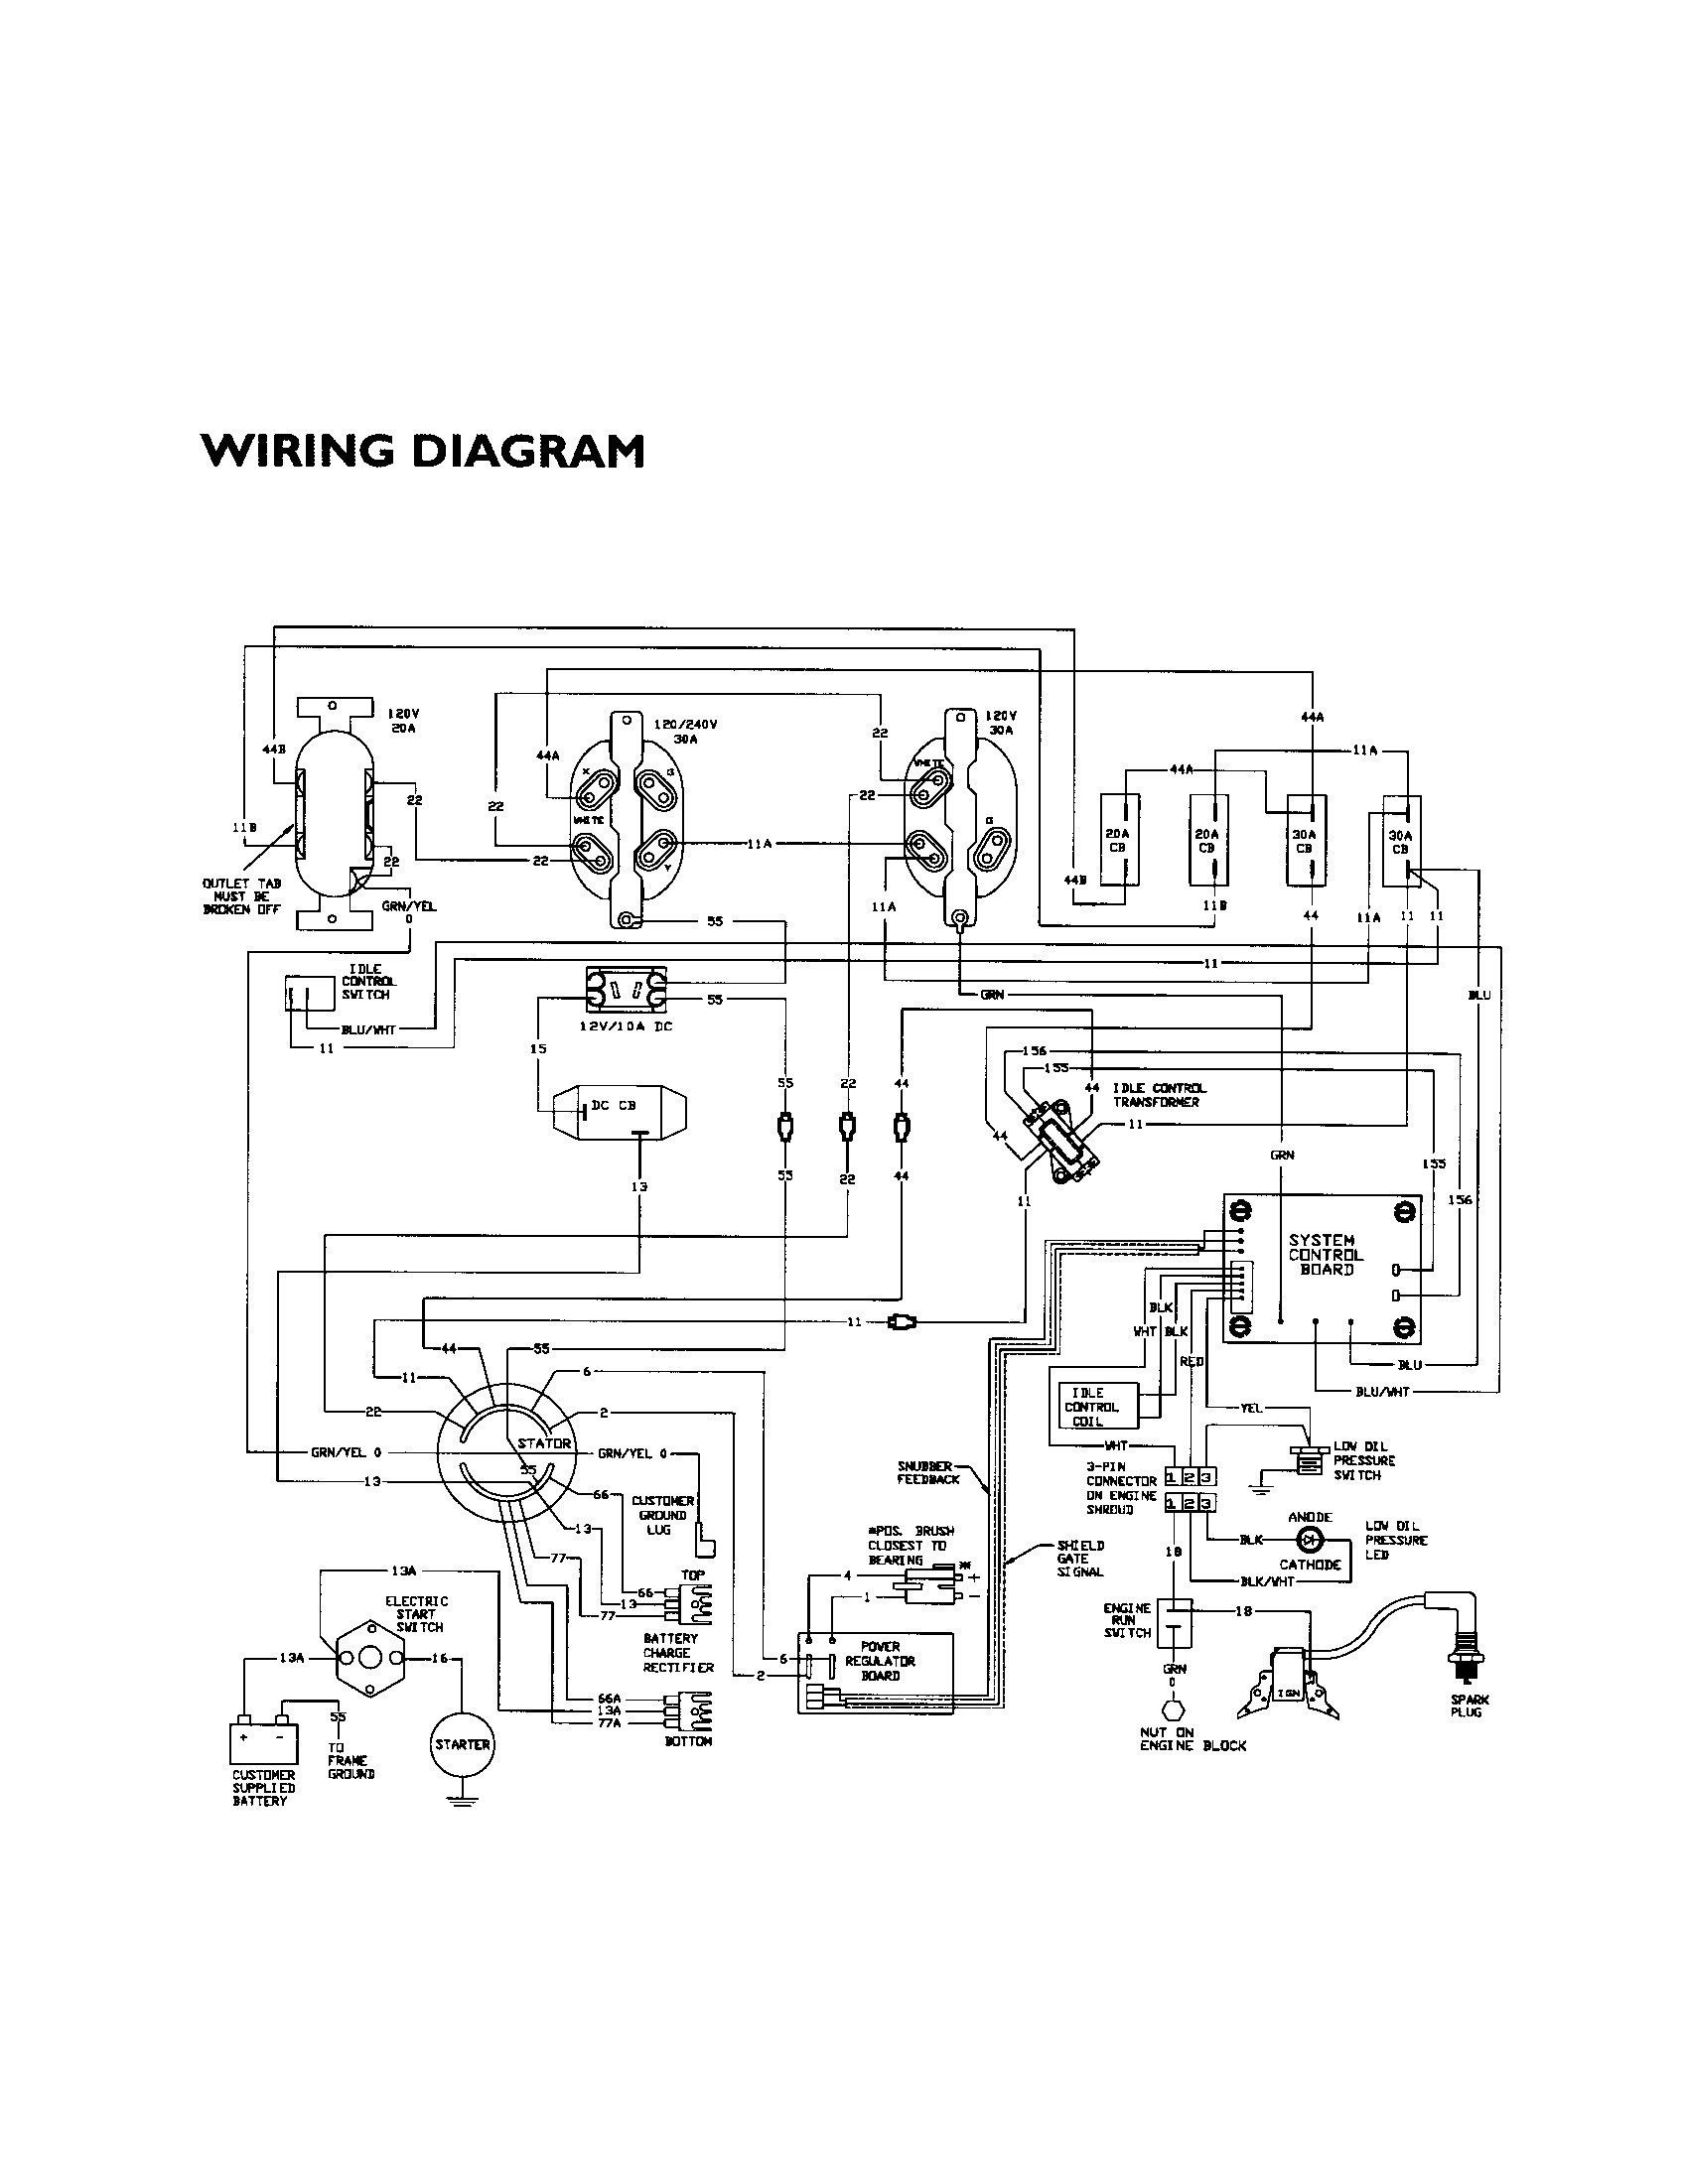 New Wiring Diagram For Kipor Generator Diagram Diagramsample Diagramtemplate Wiringdiagram Diagramchart Circuit Diagram Generator Transfer Switch Diagram